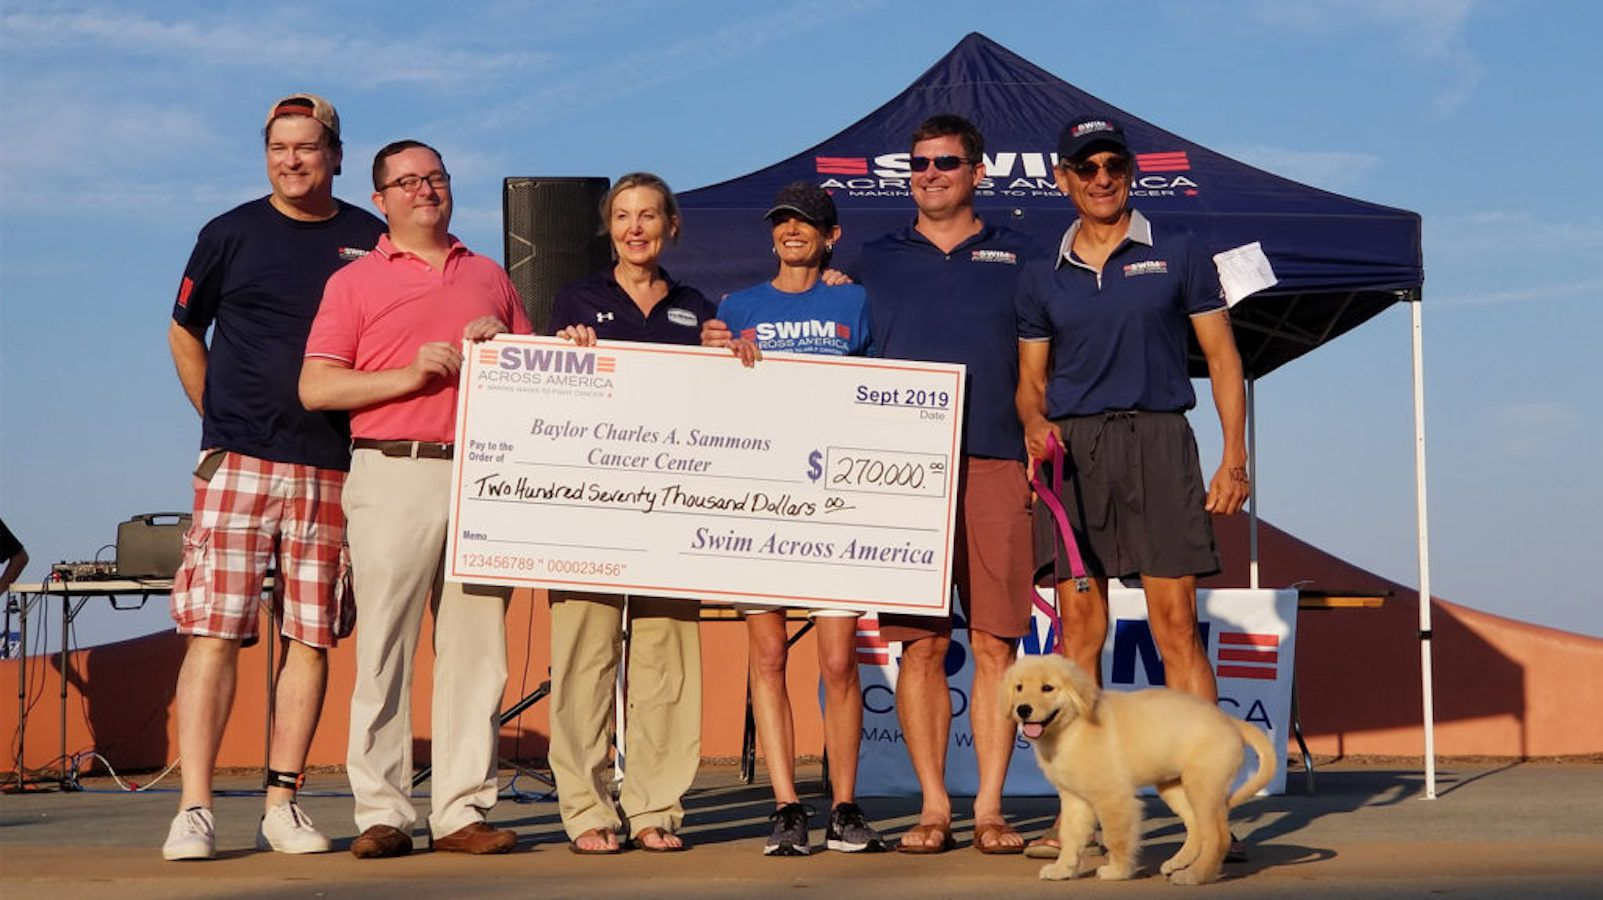 The ninth annual Swim Across America Dallas event generated more than a quarter-million dollars for cancer research and treatment.